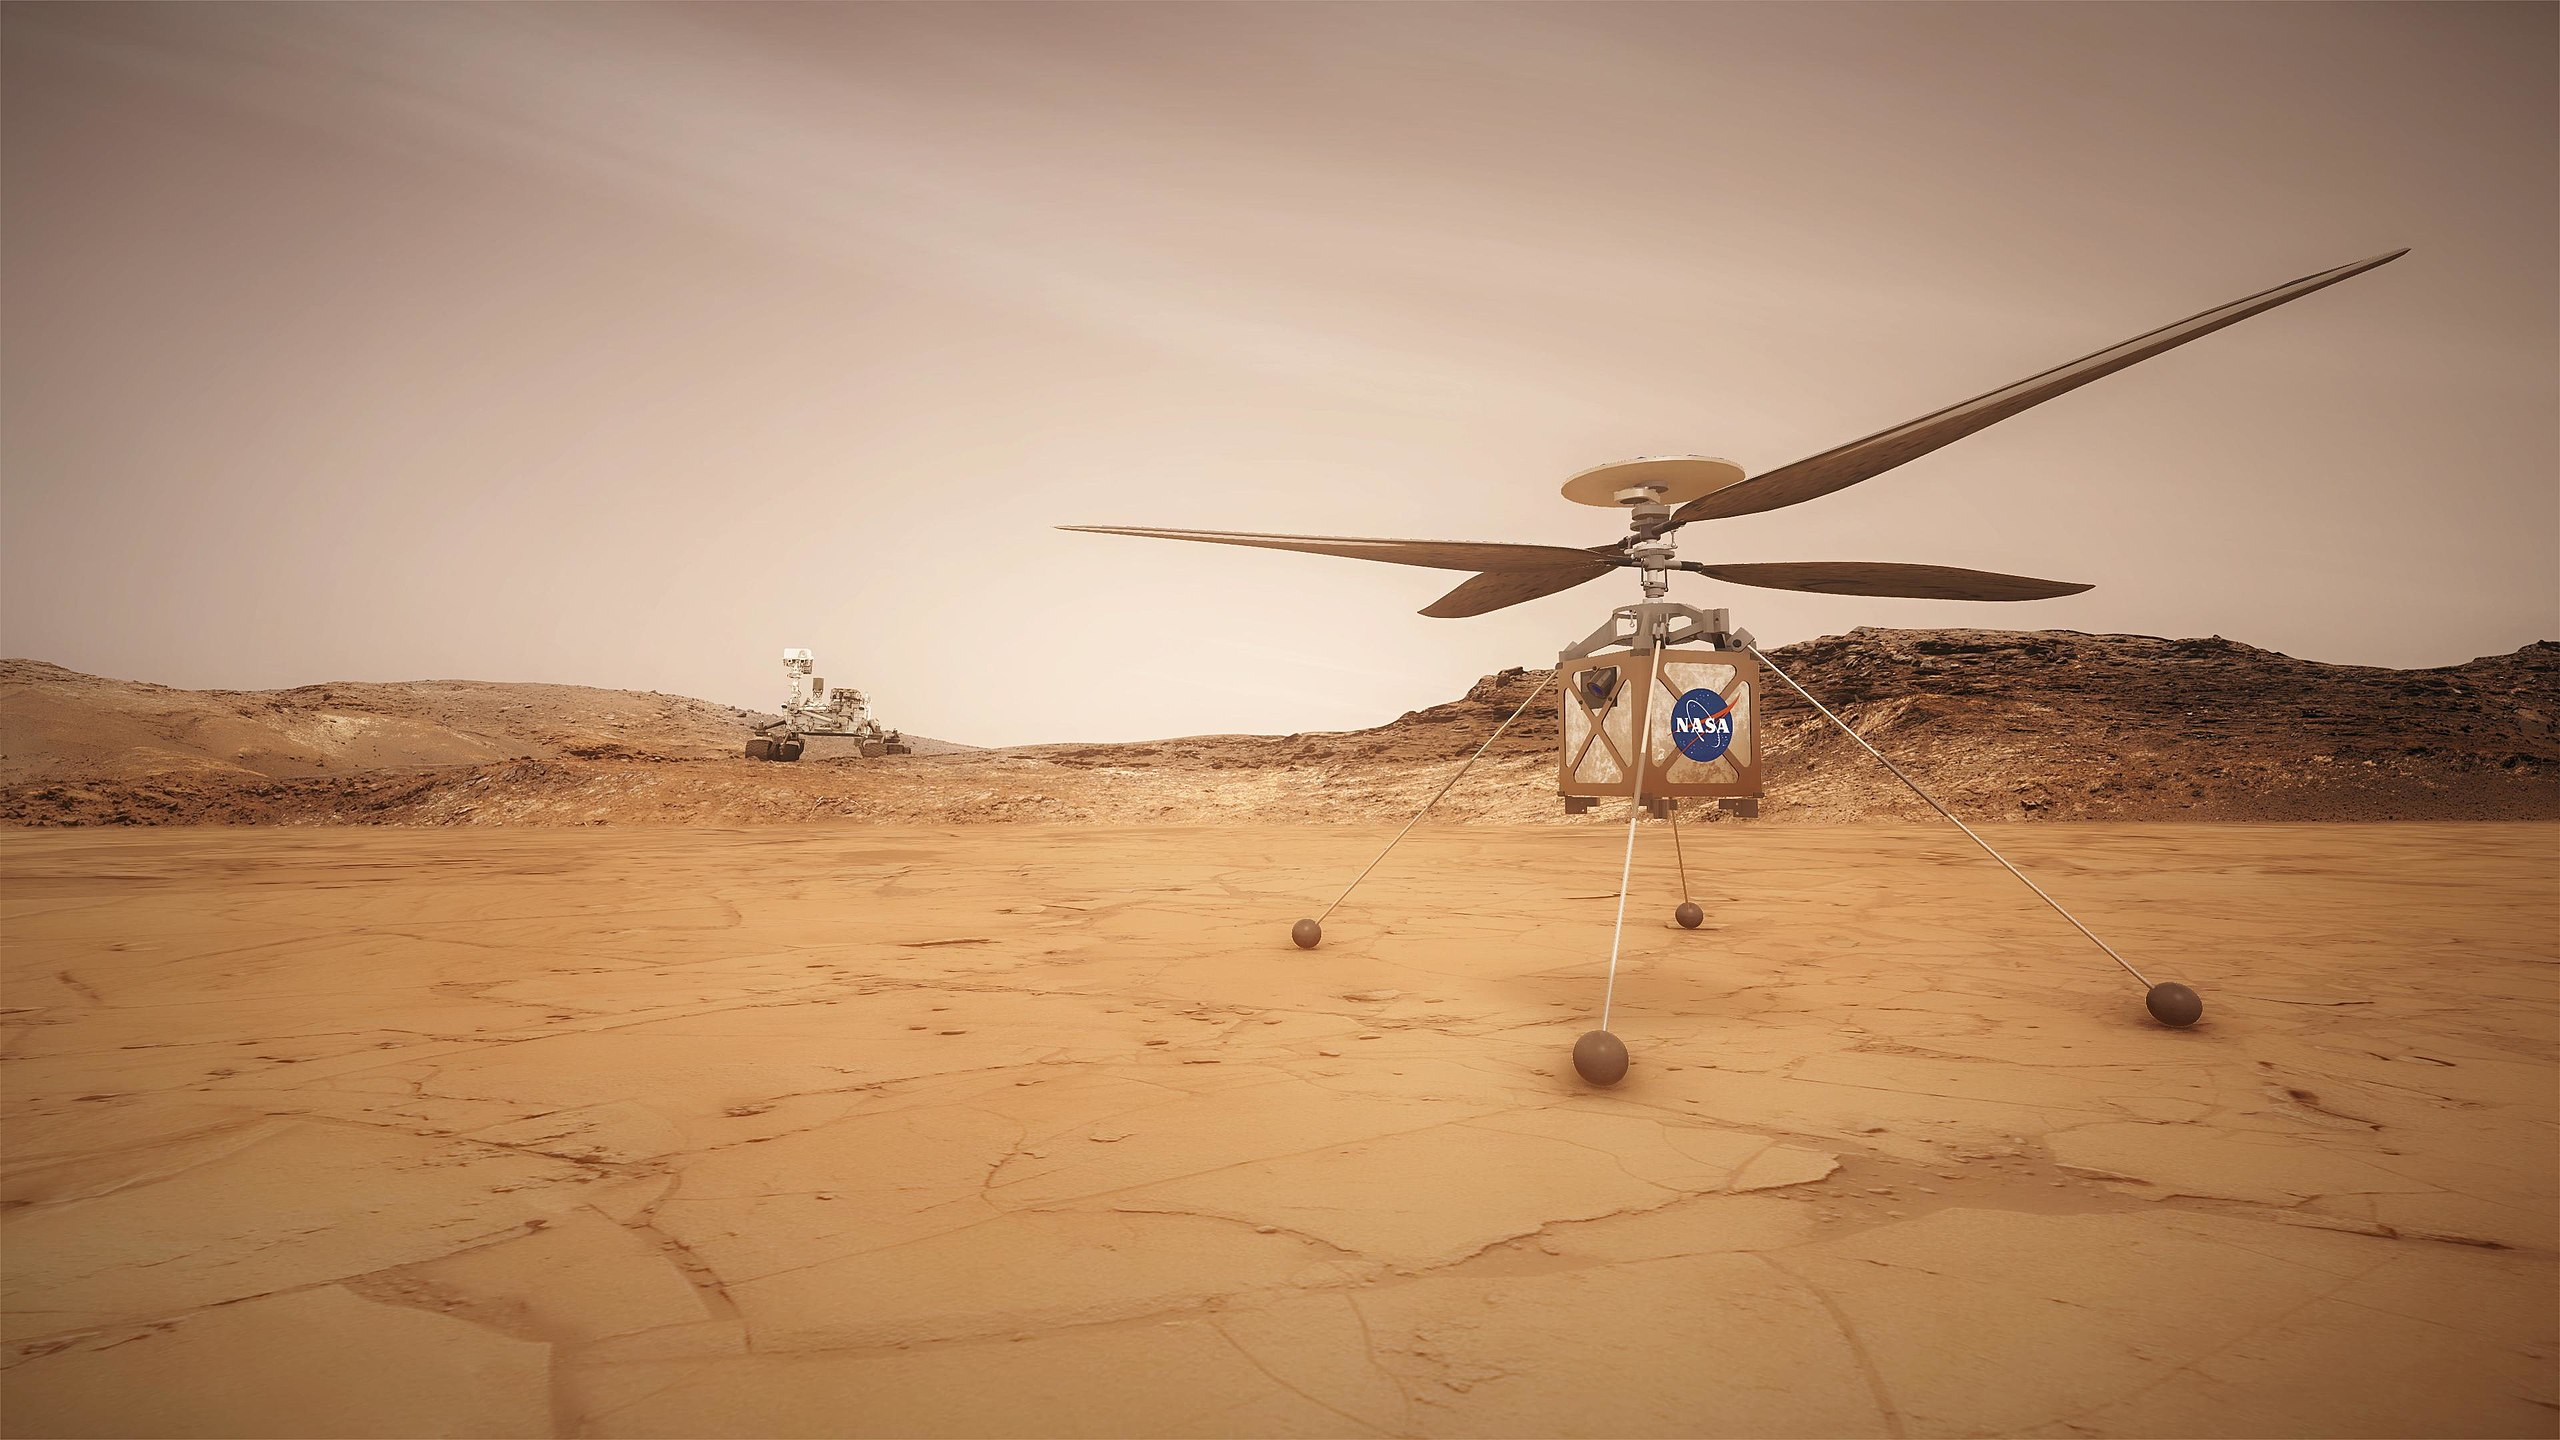 NASA Plans To Send A Helicopter To Mars In 2020